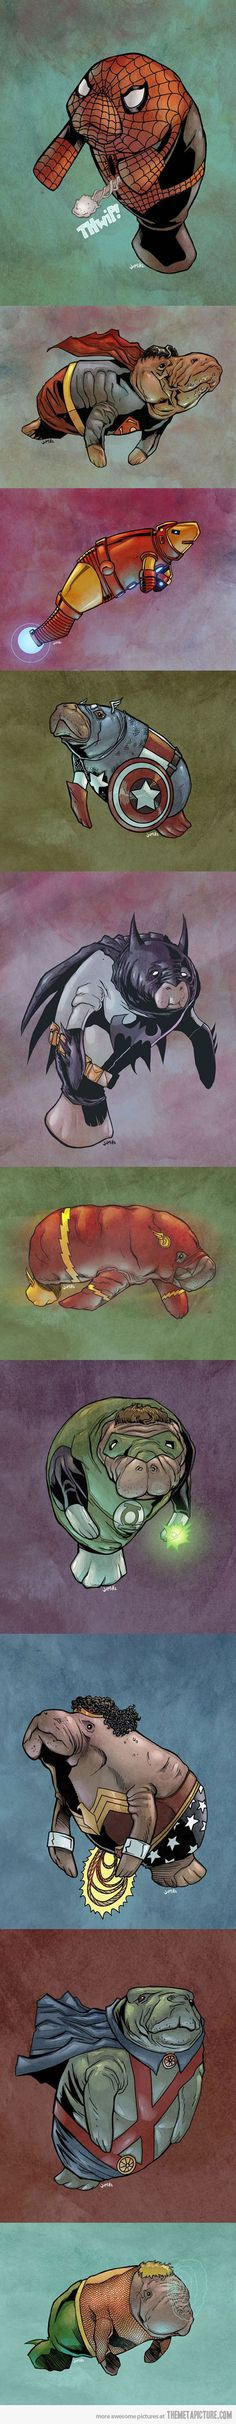 Superheroes as Manatees... i don't know why this exists, but it makes me giggle. two great things combined